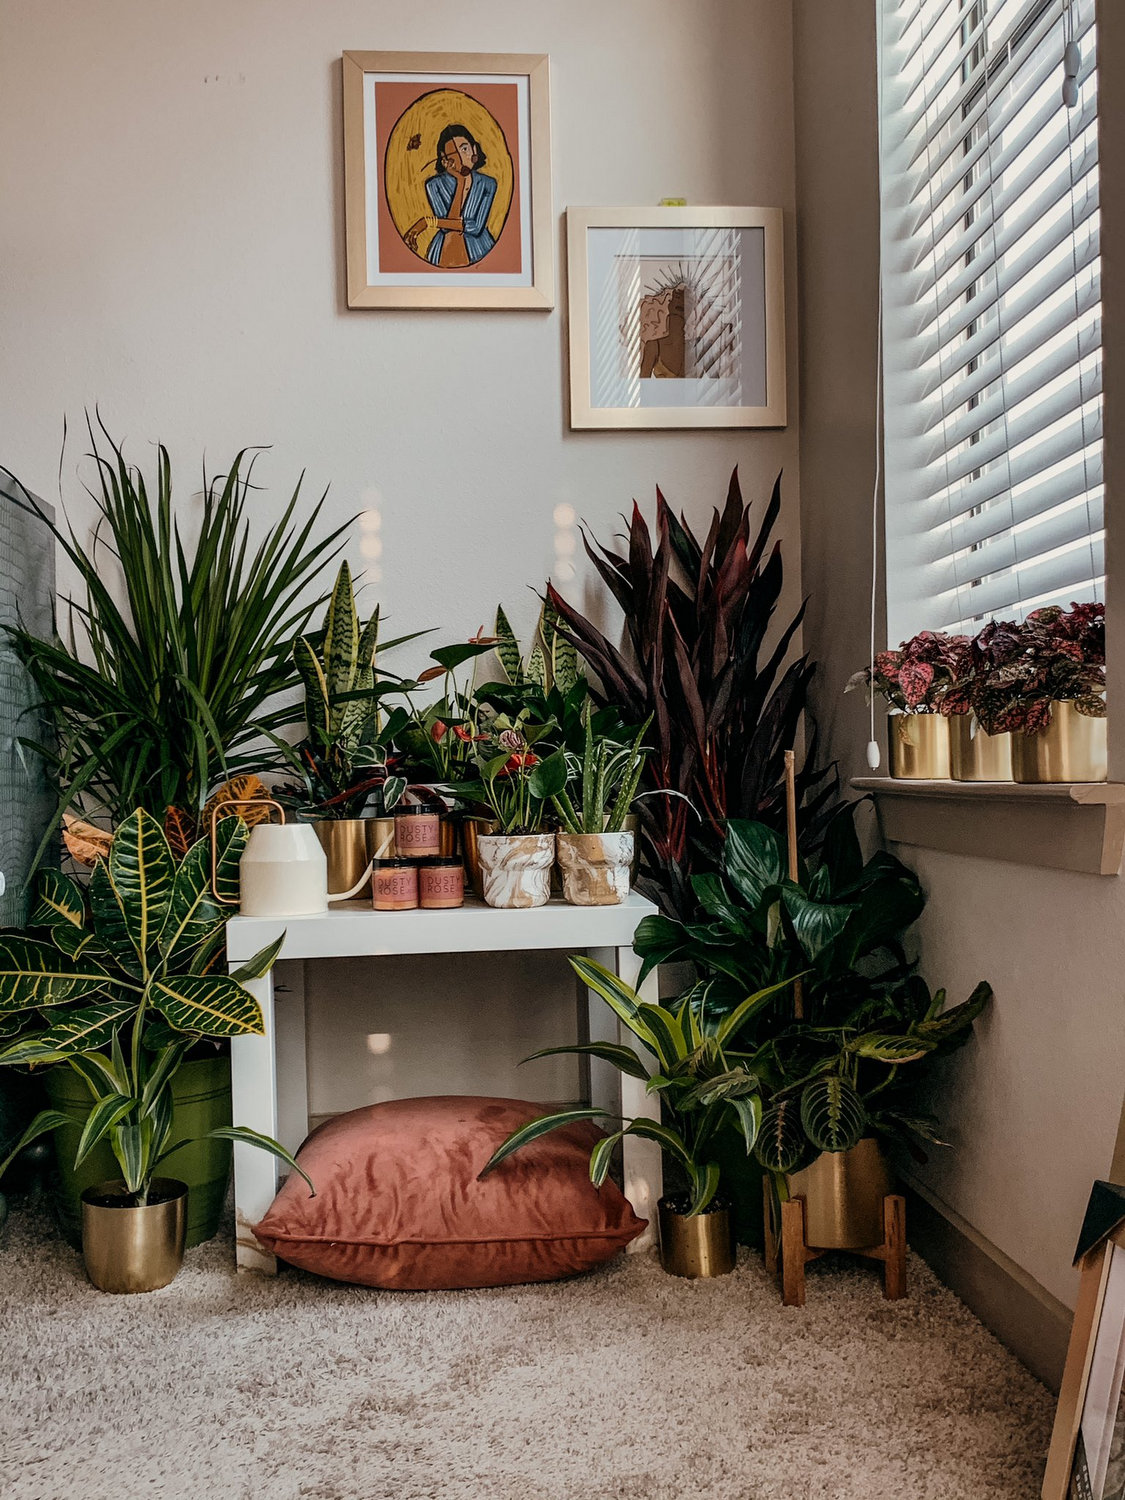 Creating Intentional Botanical Spaces- @MercyBCarruther